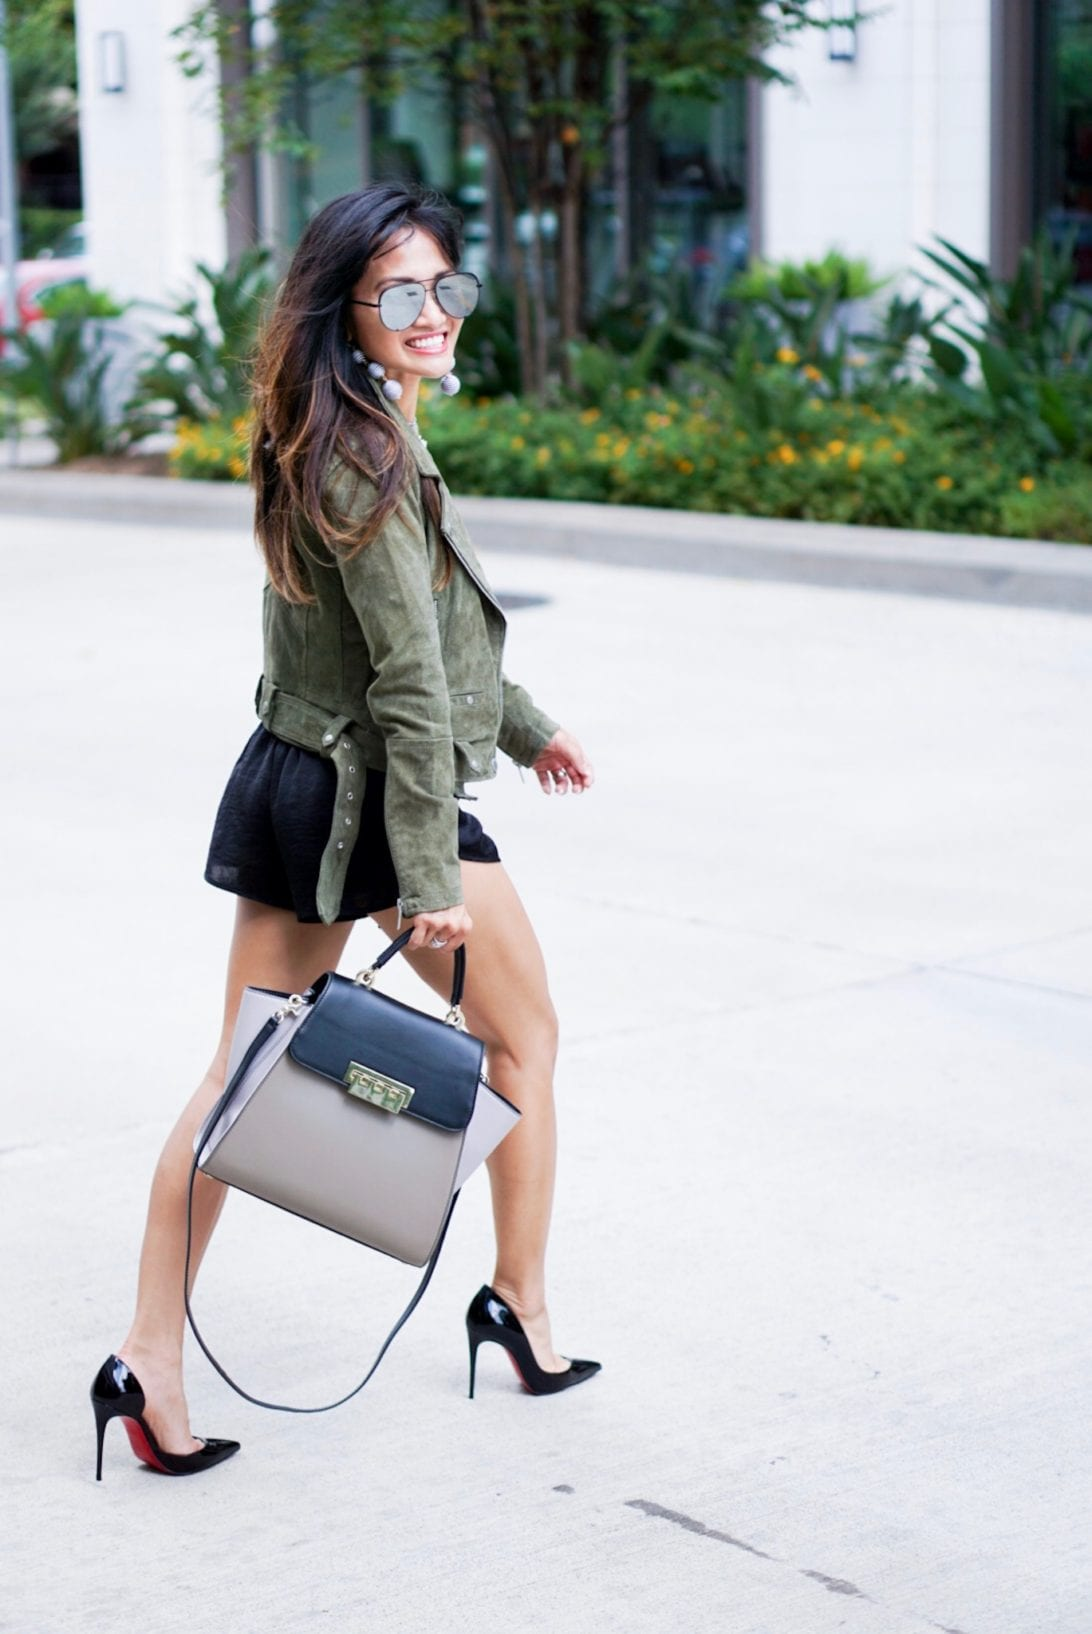 ball drop earrings, austin earrings, charming charlie, tie front shorts, satin shorts, lace top, olive moto jacket, sued jacket, ily couture, blank NYC , black pumps, dorsal pumps, louboutins, red soles, quay sunglasses